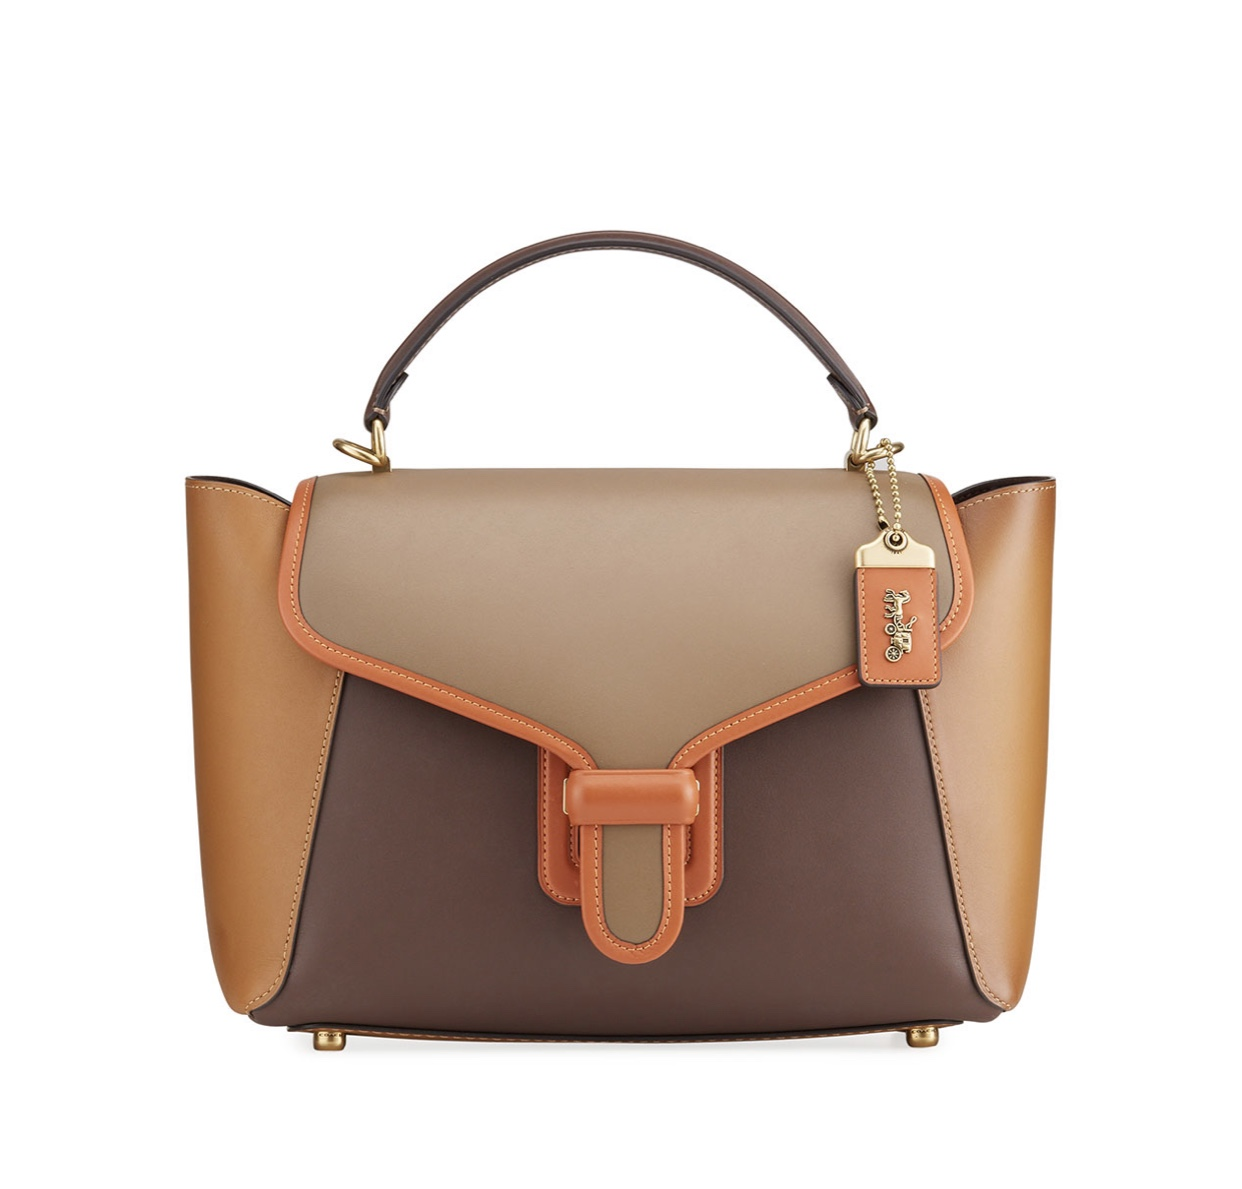 COACH 1941 Courier Carryall Satchel Bag in colorblock Leather